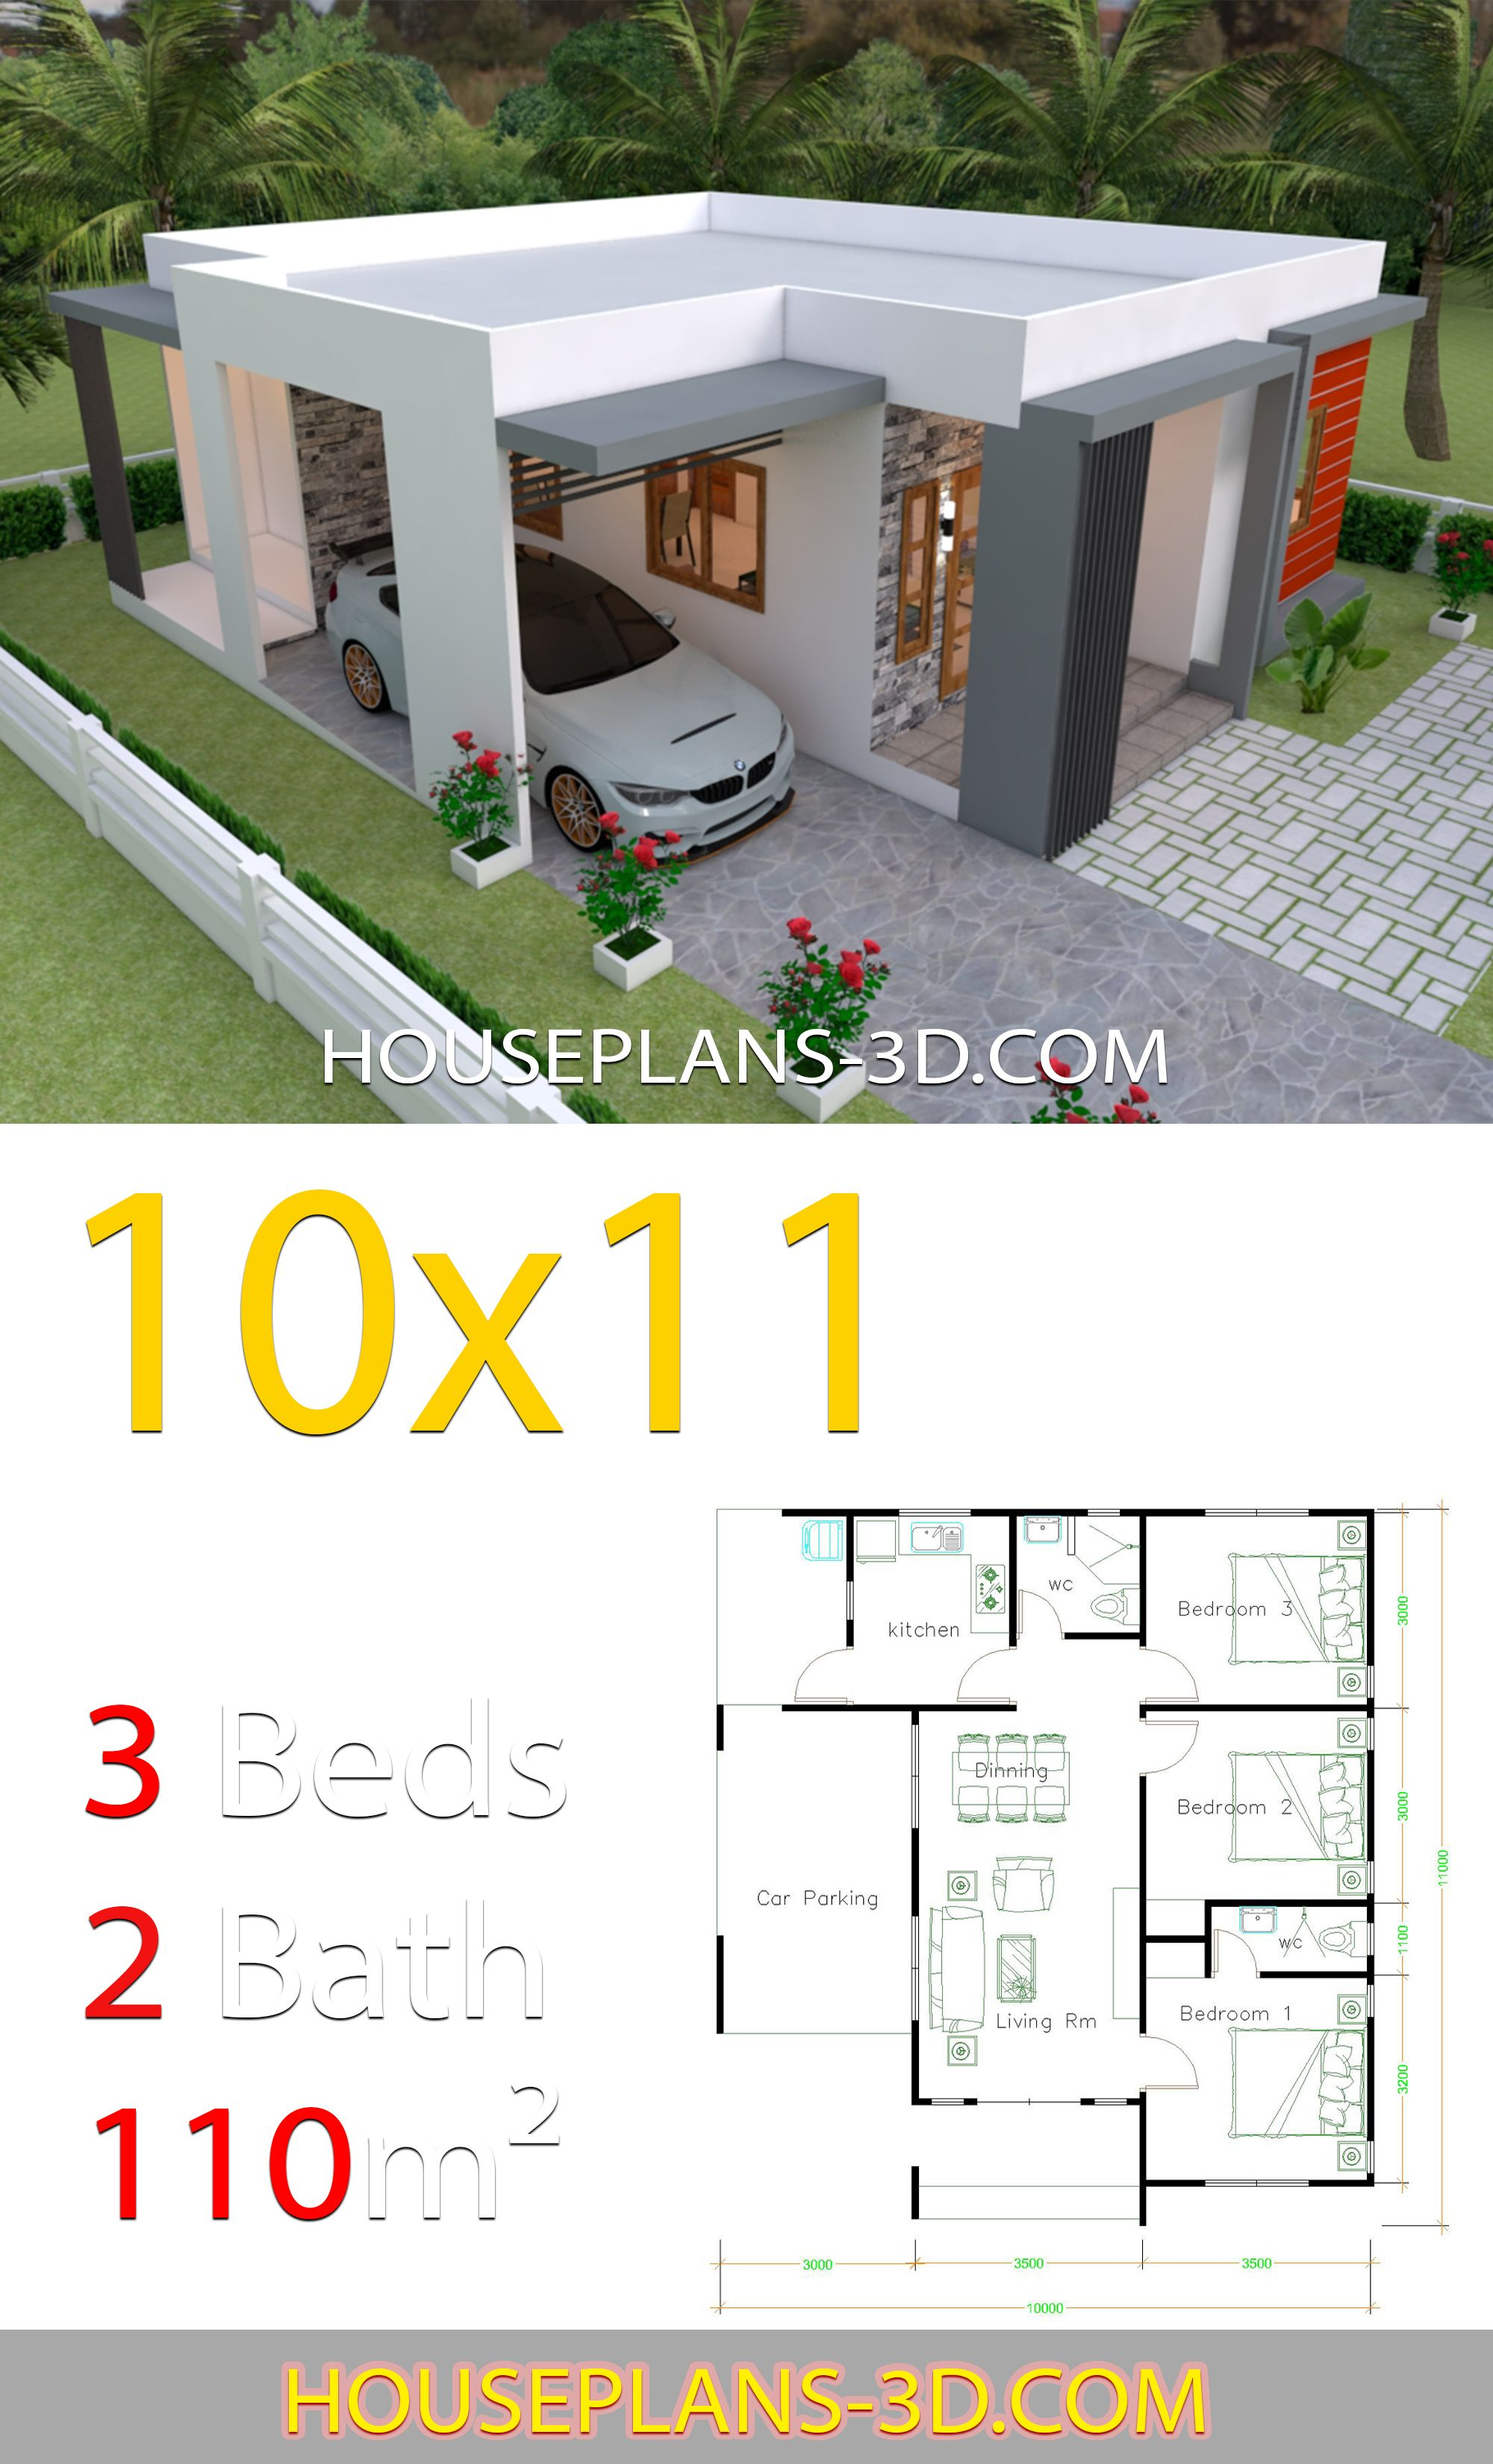 House Design 10x11 With 3 Bedrooms Terrace Roof House Plans 3d In 2020 Affordable House Design Minimalist House Design House Construction Plan